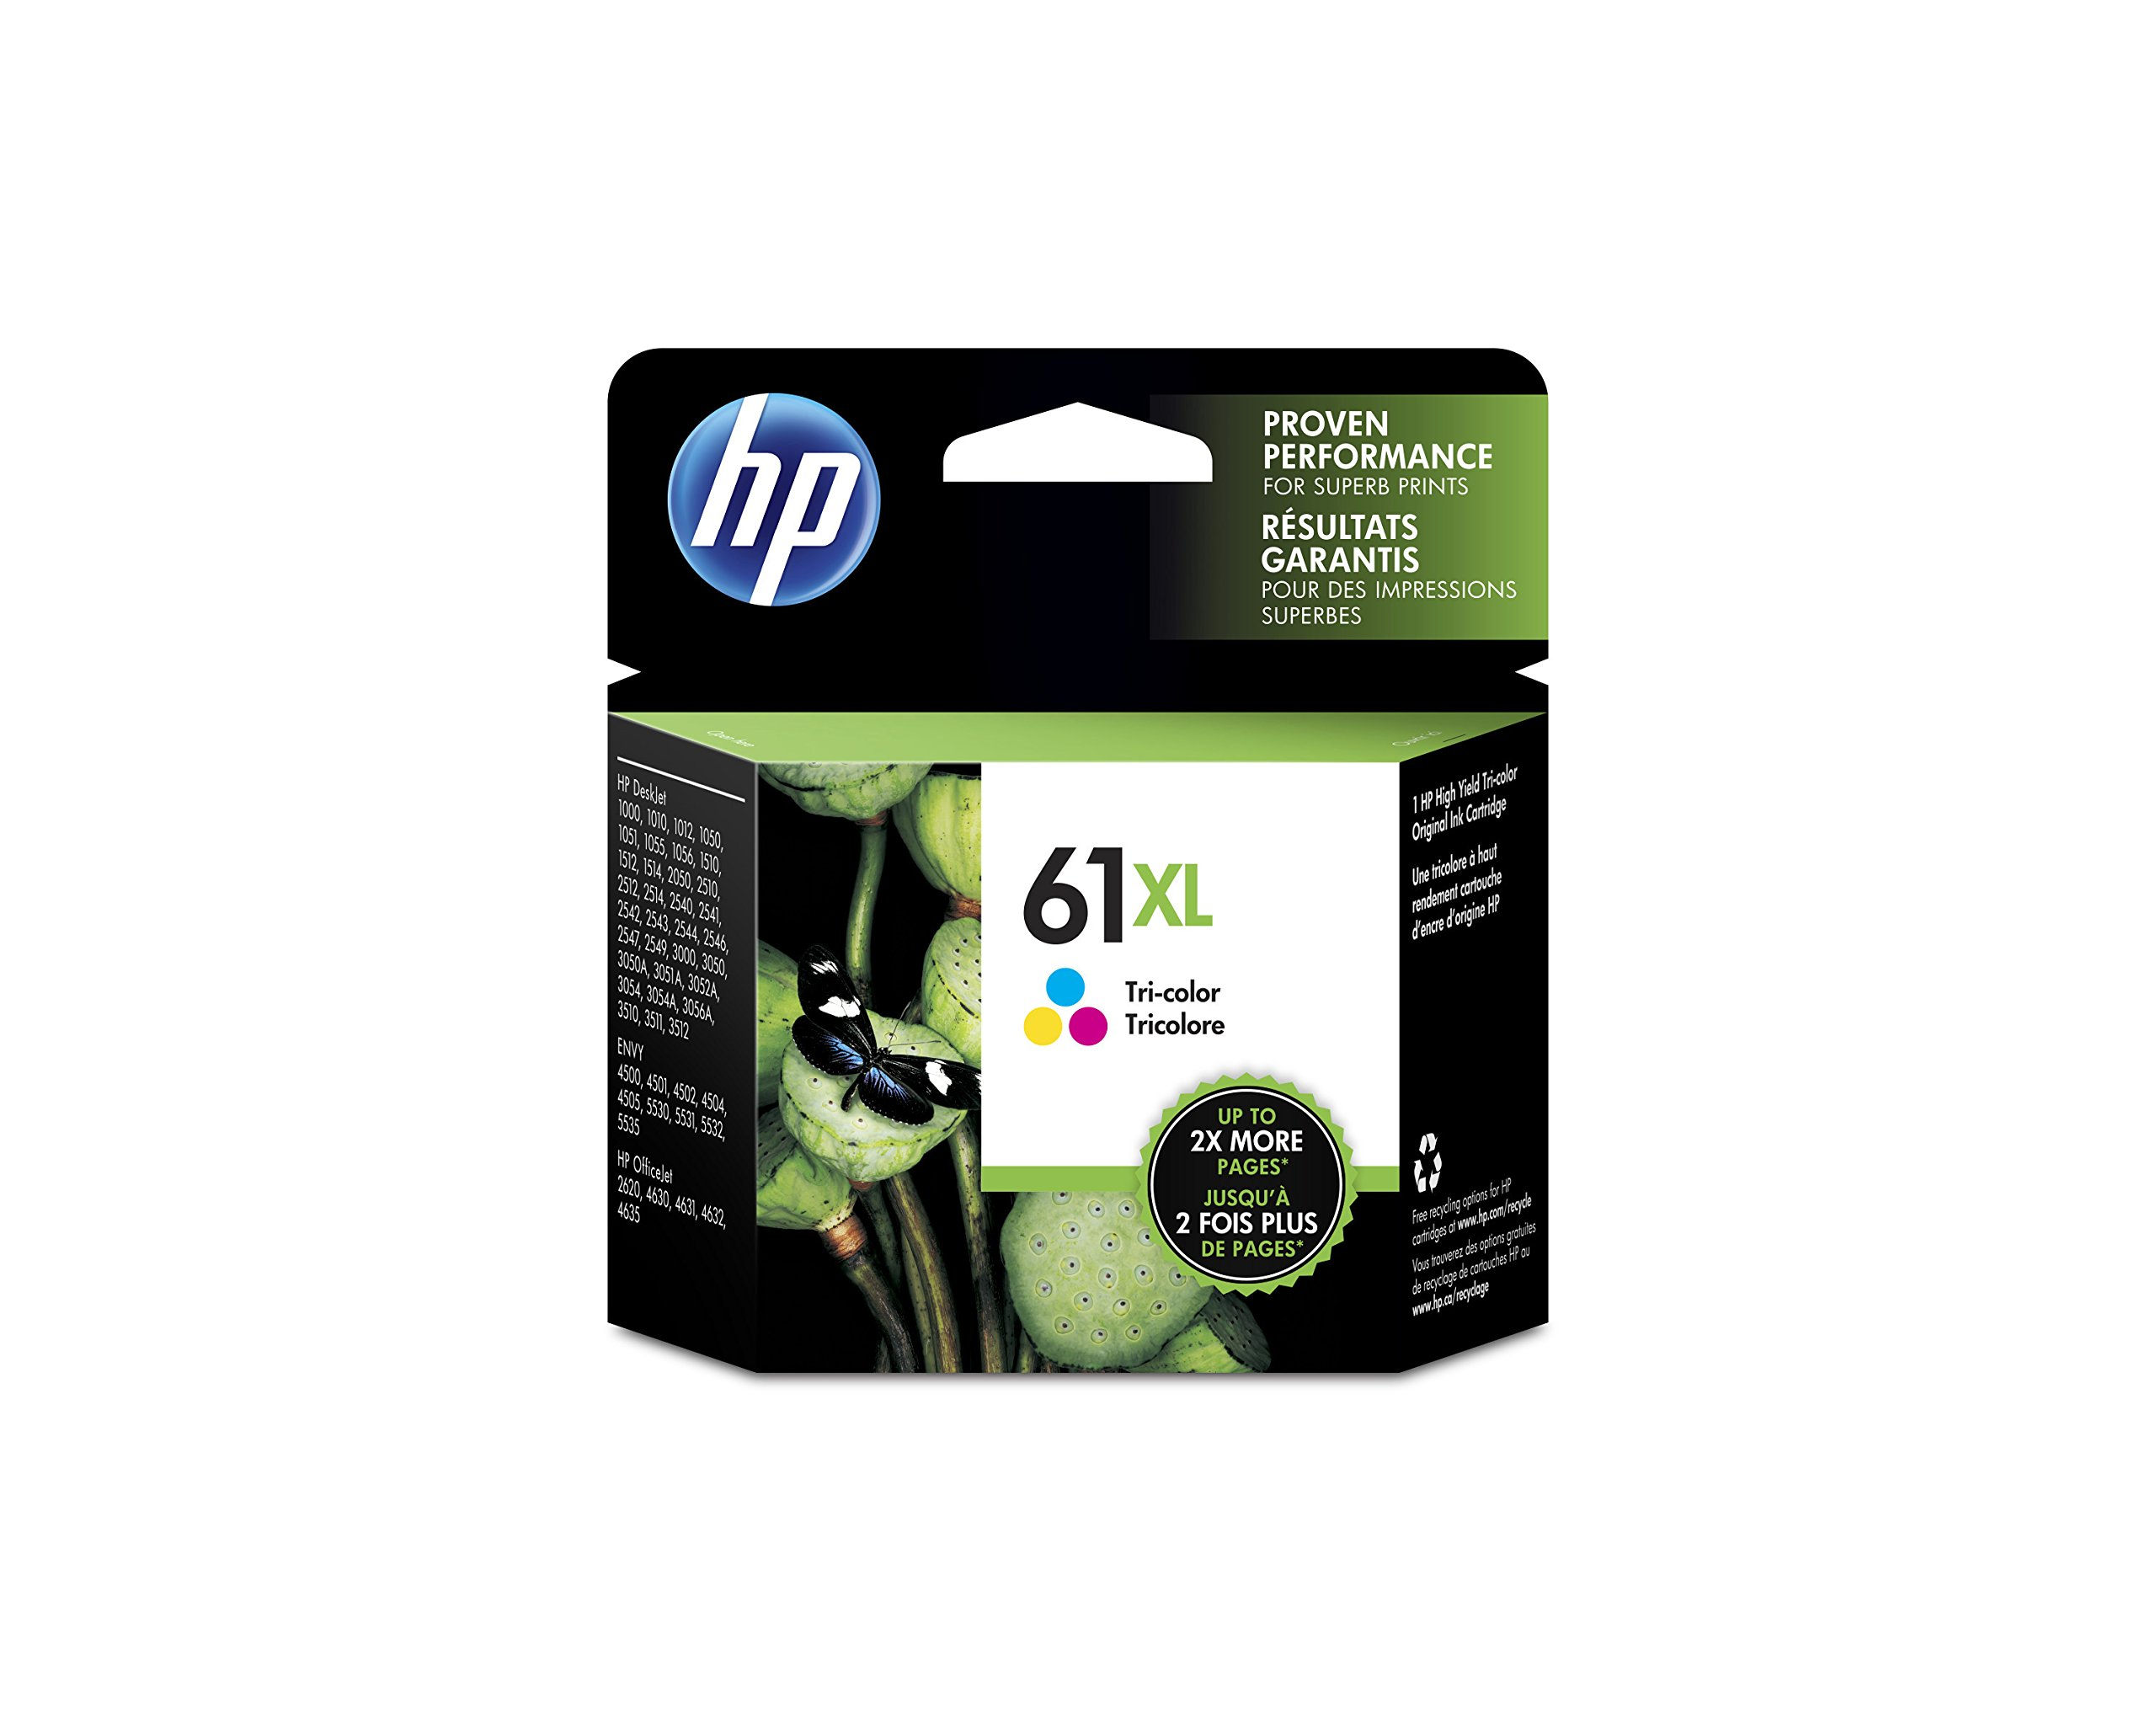 HP 61XL Ink Cartridge, Tri-color High Yield (CH564WN) for HP Deskjet 1000 1010 1012 1050 1051 1055 1056 1510 1512 1514 1051 2050 2510 2512 2514 2540 2541 2542 2543 2544 2546 2547 3000 3050 3051 3052 3054 3056 3510 3511 3512HP ENVY 4500 4502 4504 5530 5531